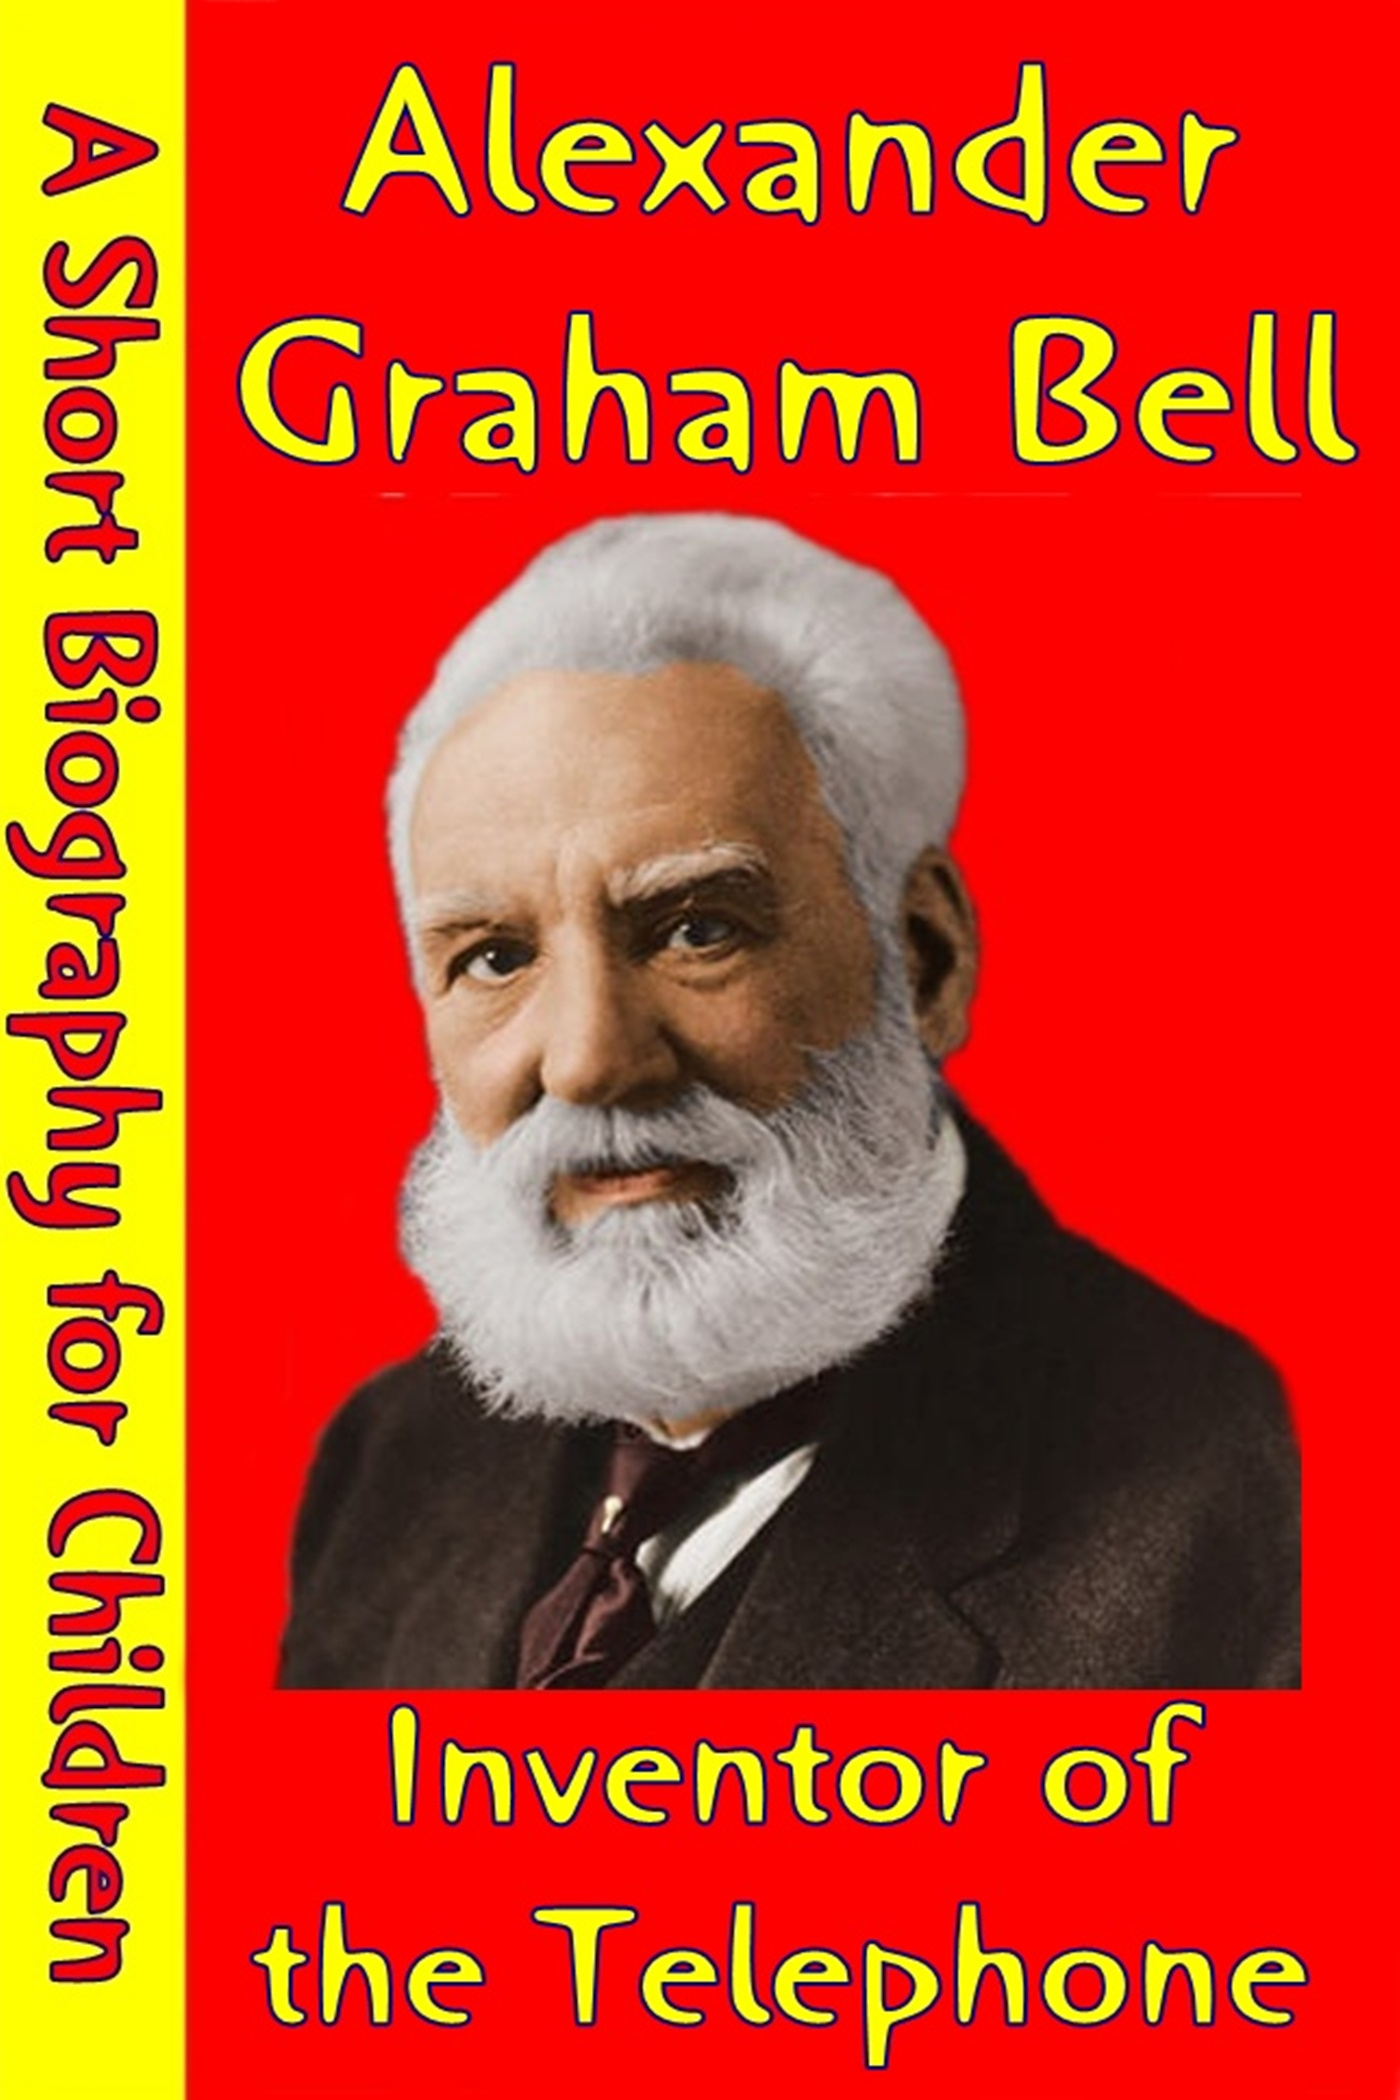 a biography and life work of alexander graham bell a scottish inventor Alexander graham bell was a scottish-american scientist and inventor, referred to as 'father of the telephone' this biography of alexander bell provides detailed information about his childhood, life, achievements, works & timeline.